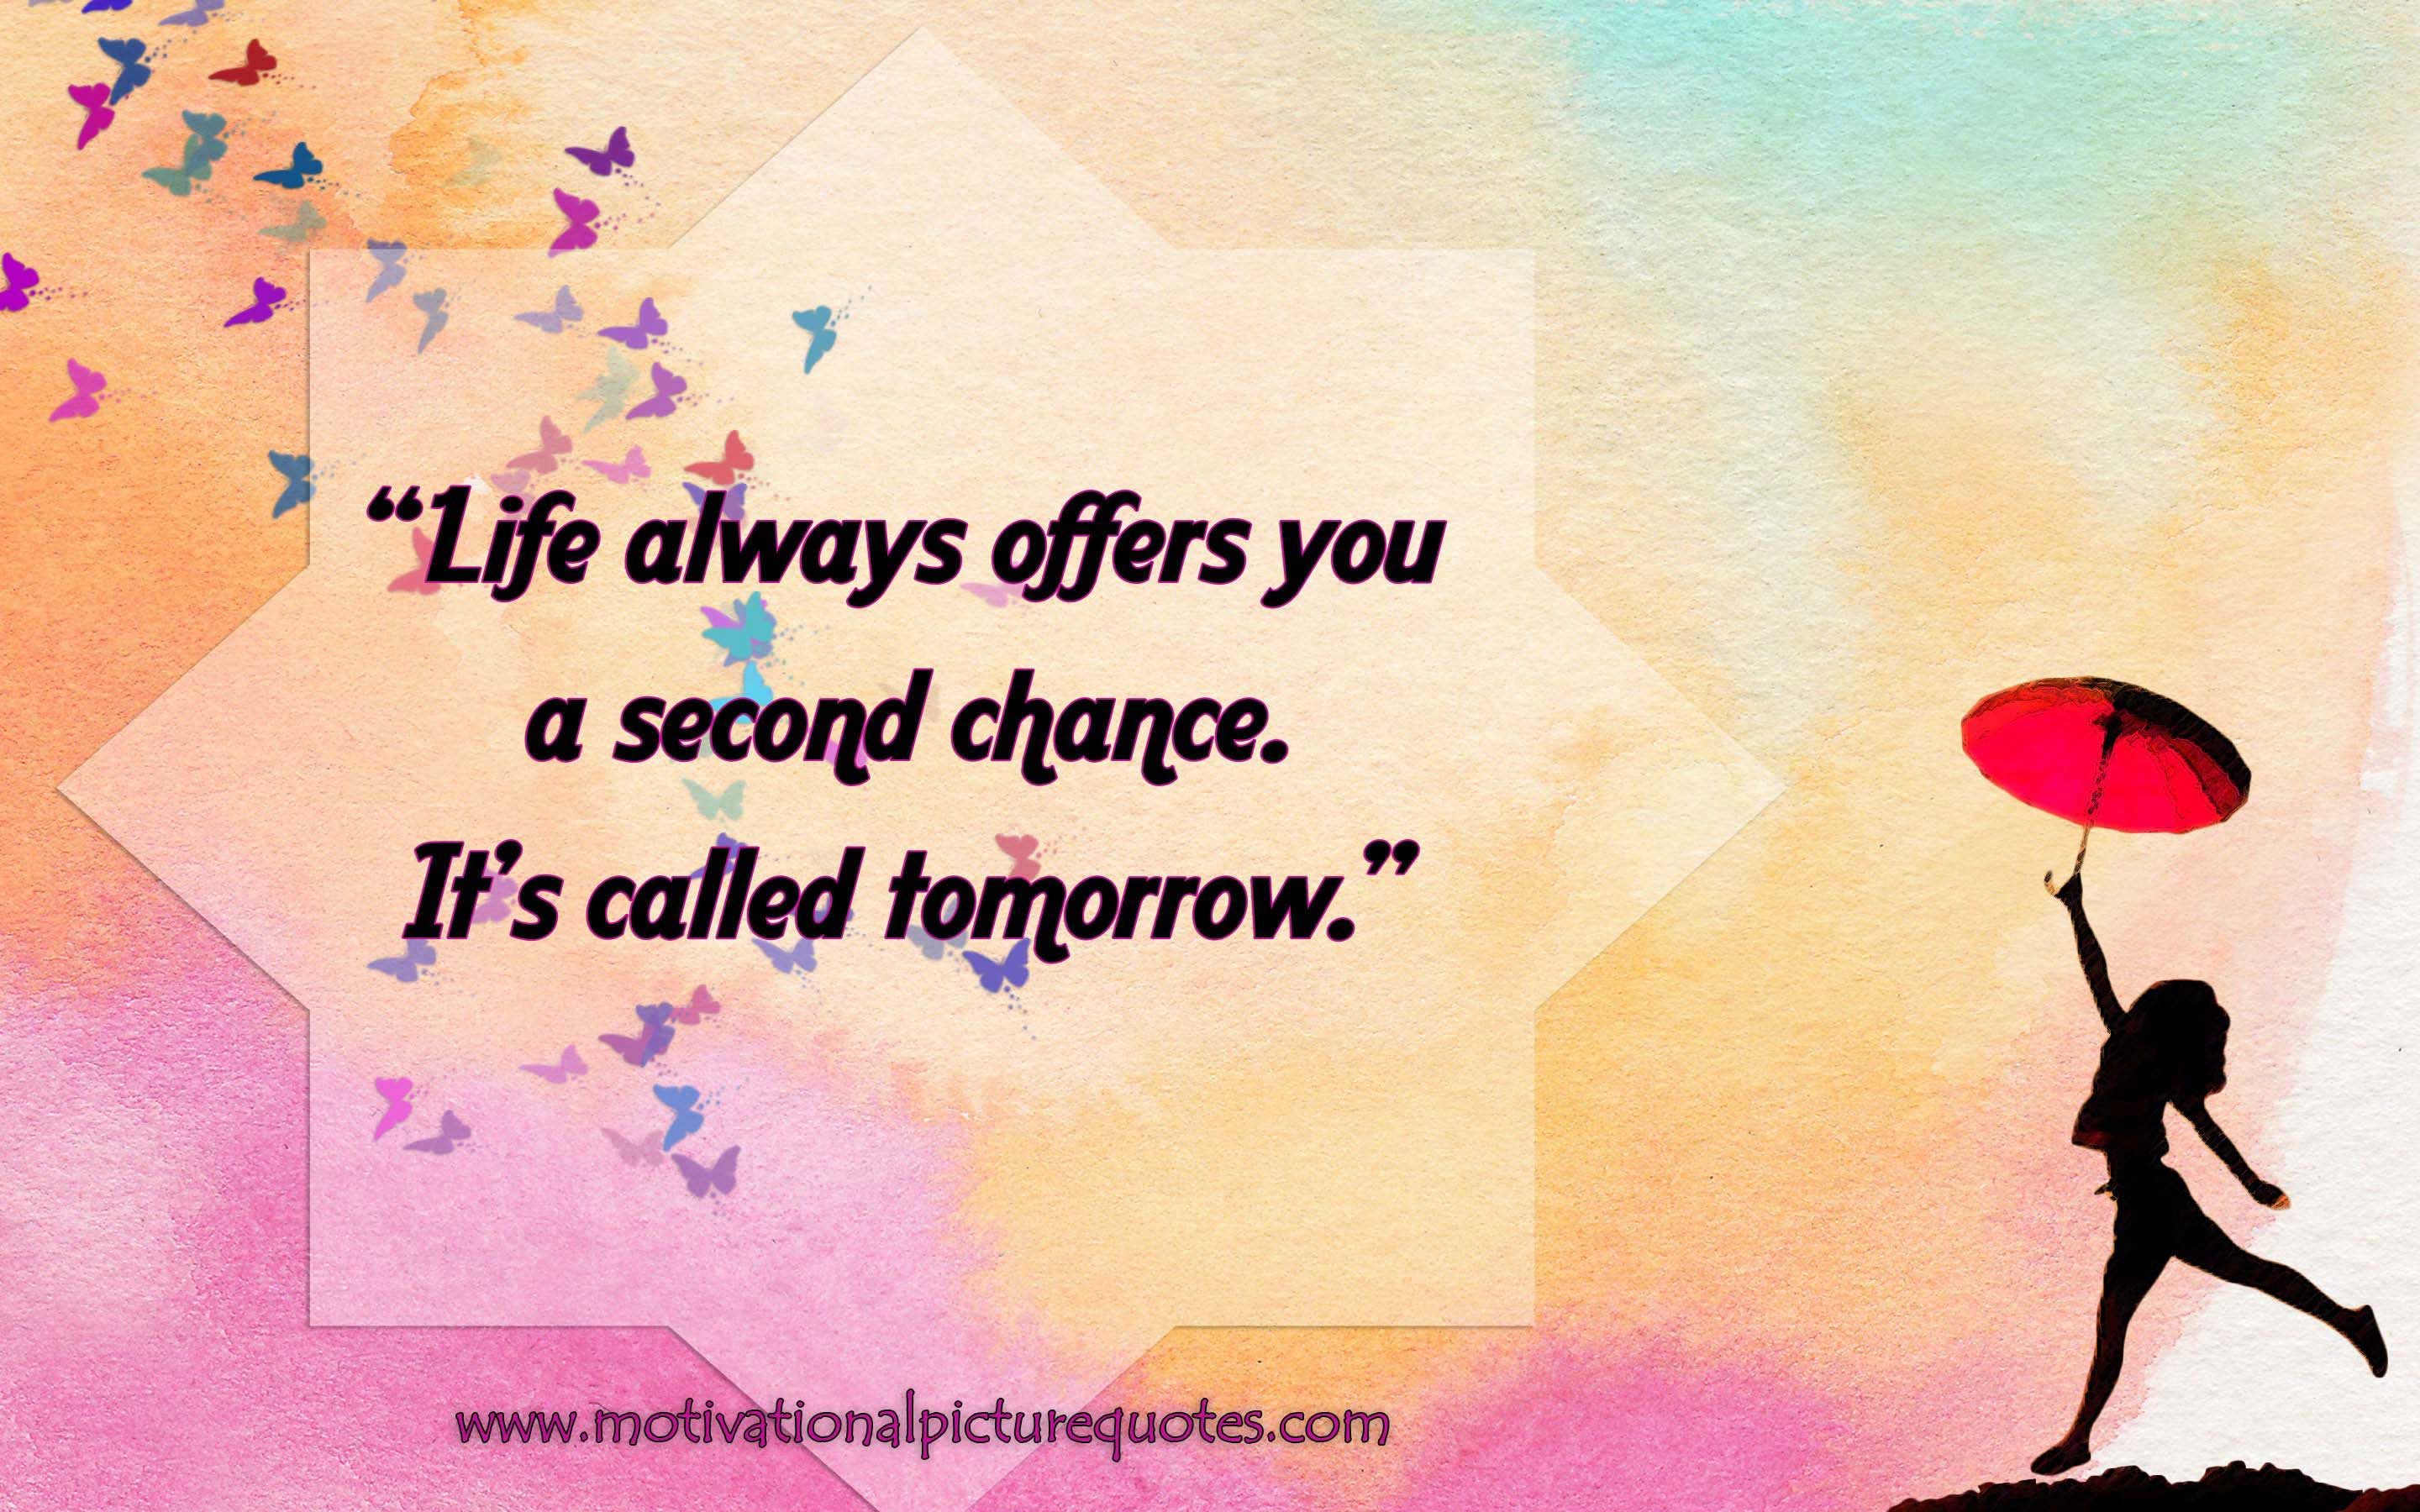 Short Quotations 50 Best Life Quotes Images For Free Download  Insbright